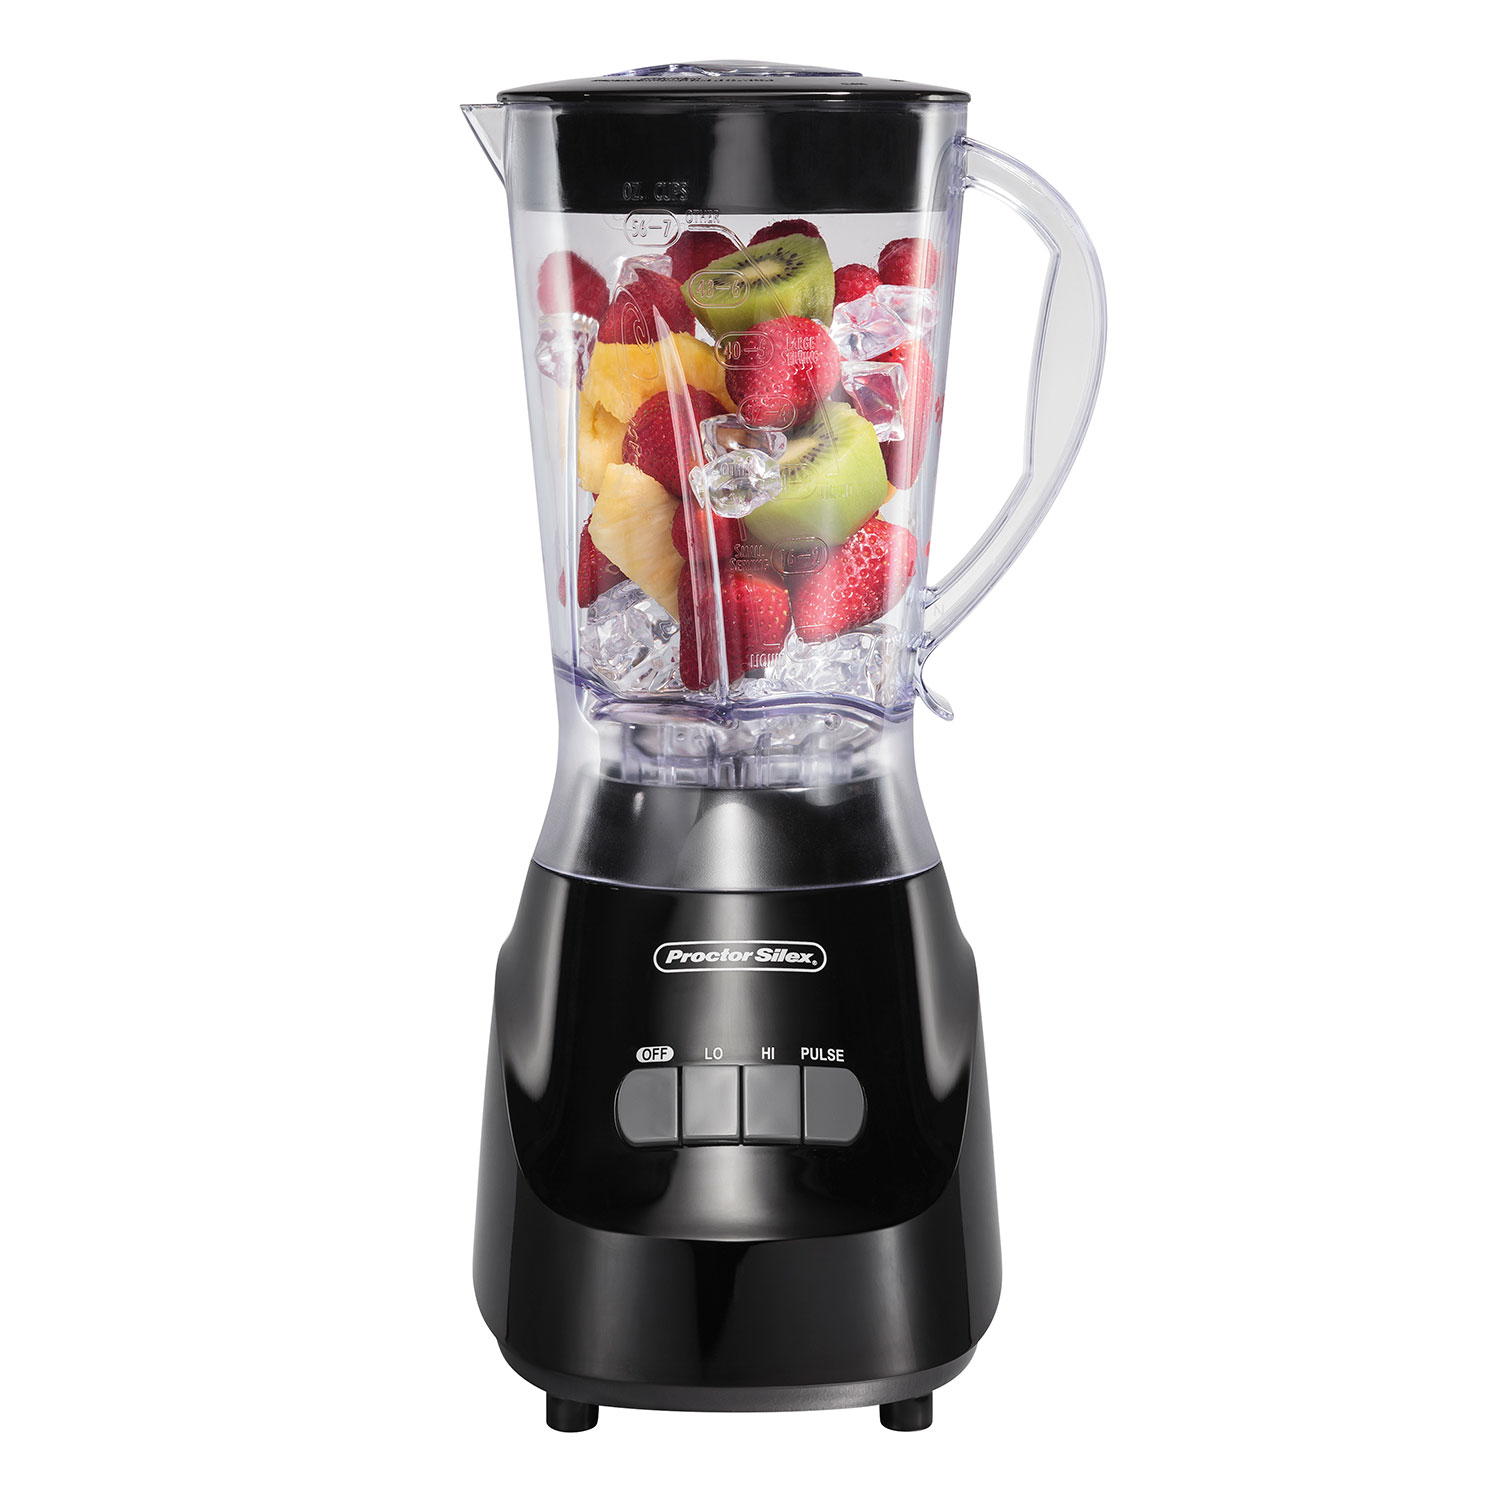 2 Speed + Pulse Blender (black) - 58137